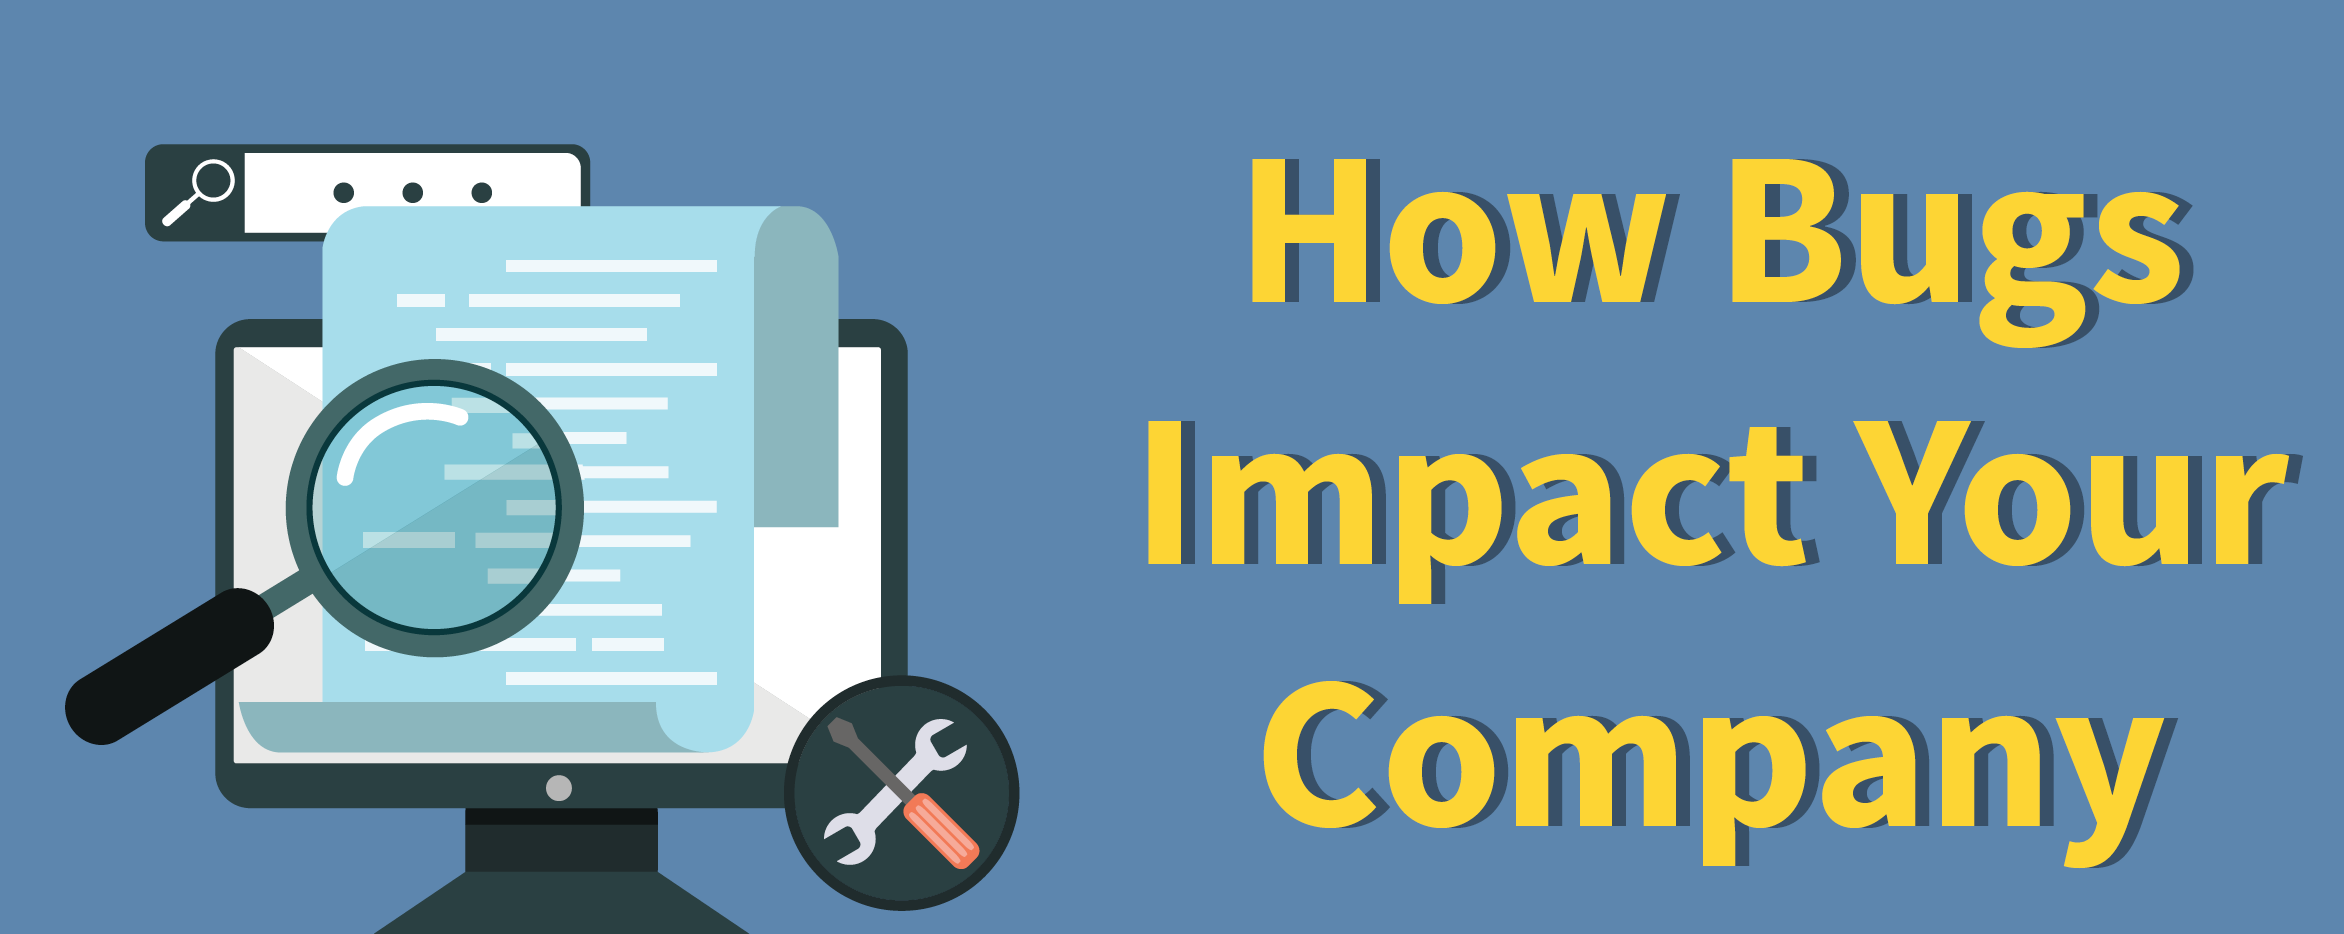 How Bugs Impact Your Company [infographic] by